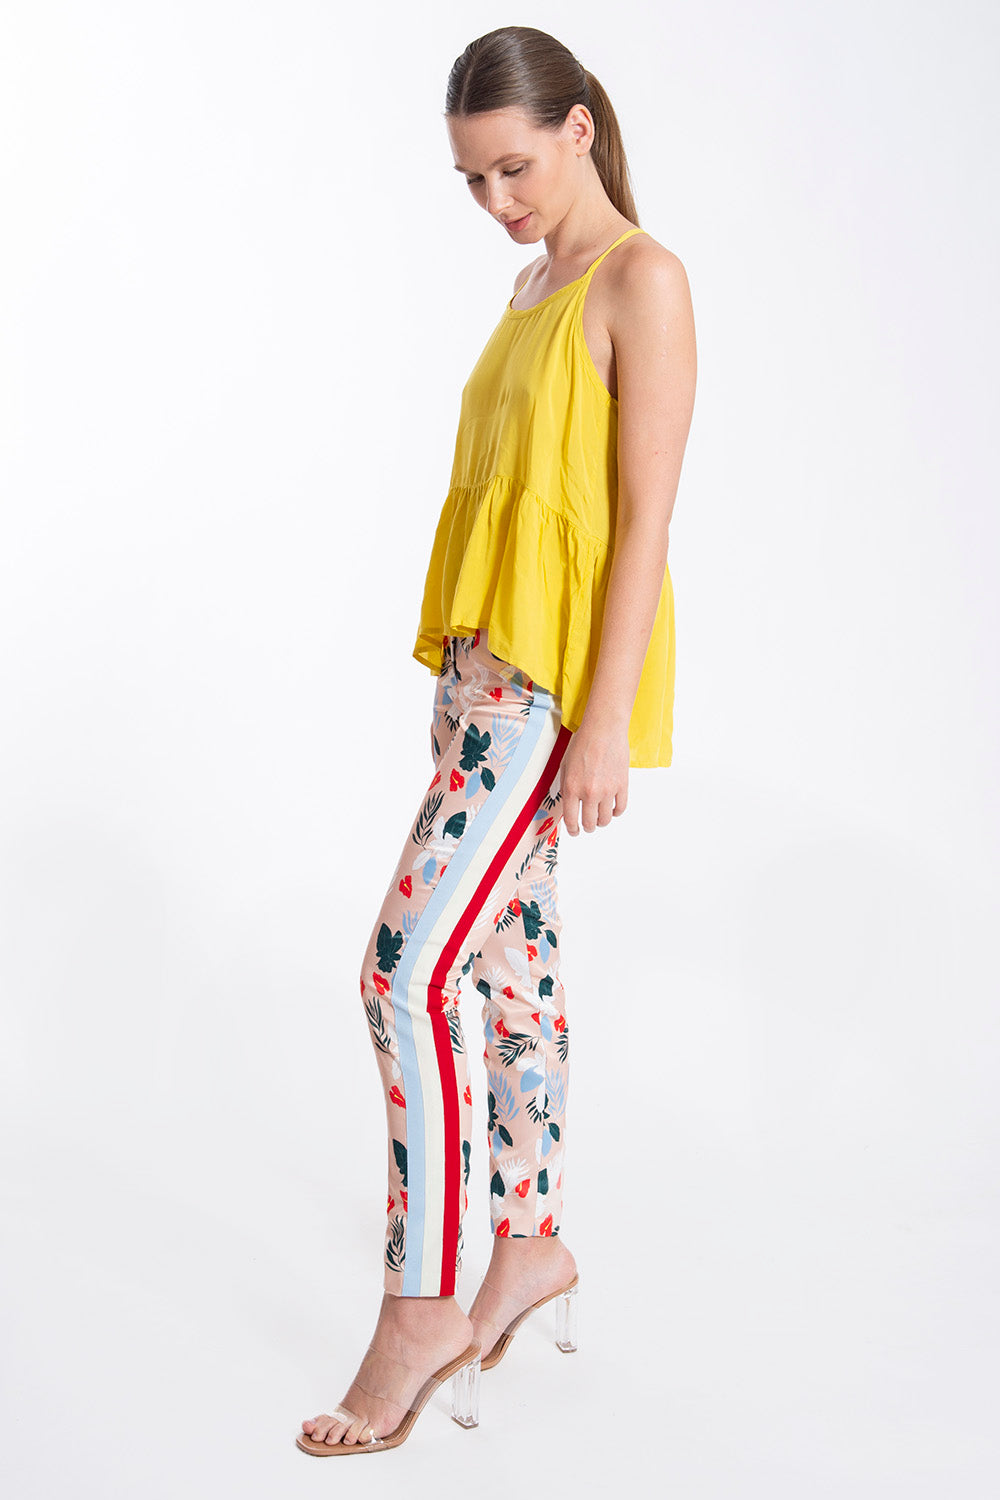 Relish straigt line floral trousers with stripes